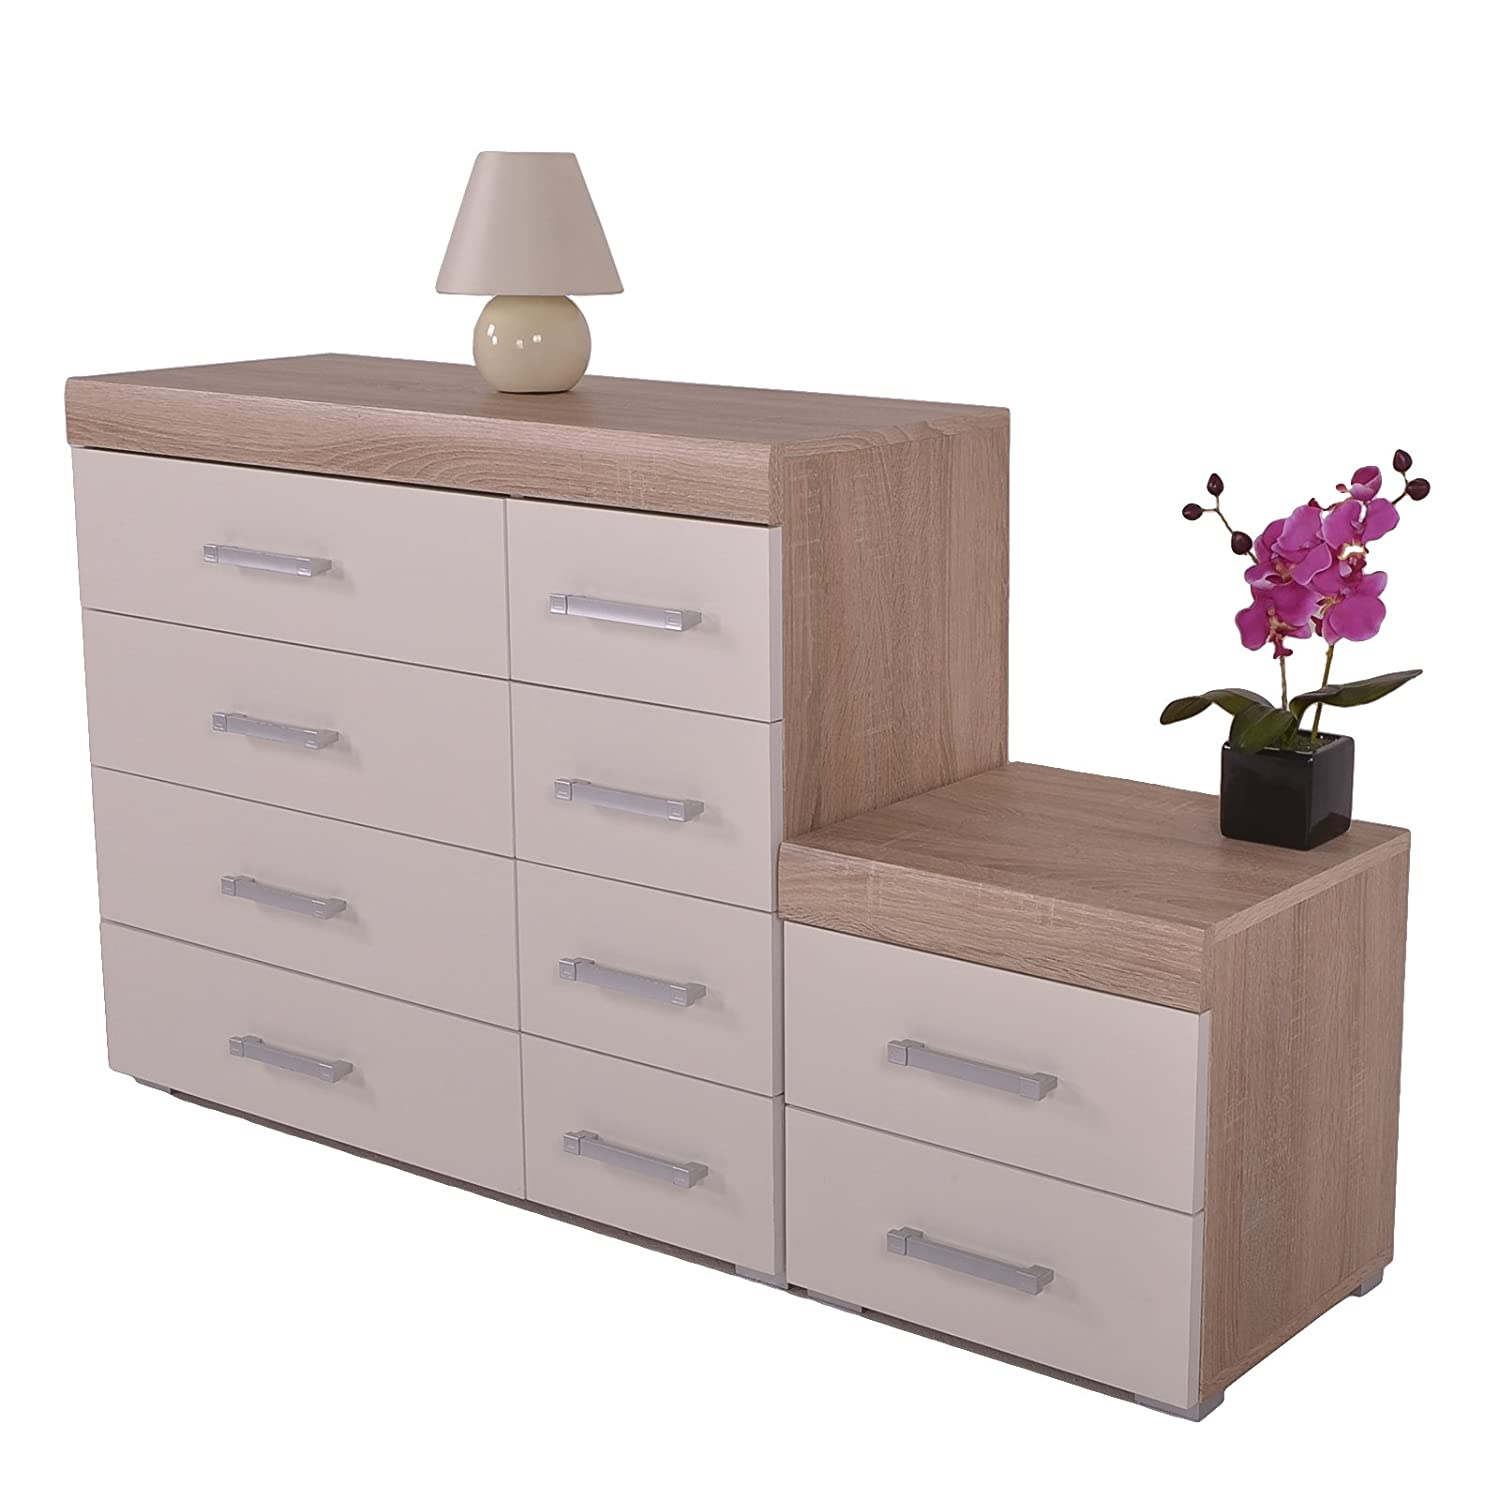 DP White & Oak 4+4 Drawer Chest & 2 Drawer Bedside Cabinet Bedroom Furniture 8